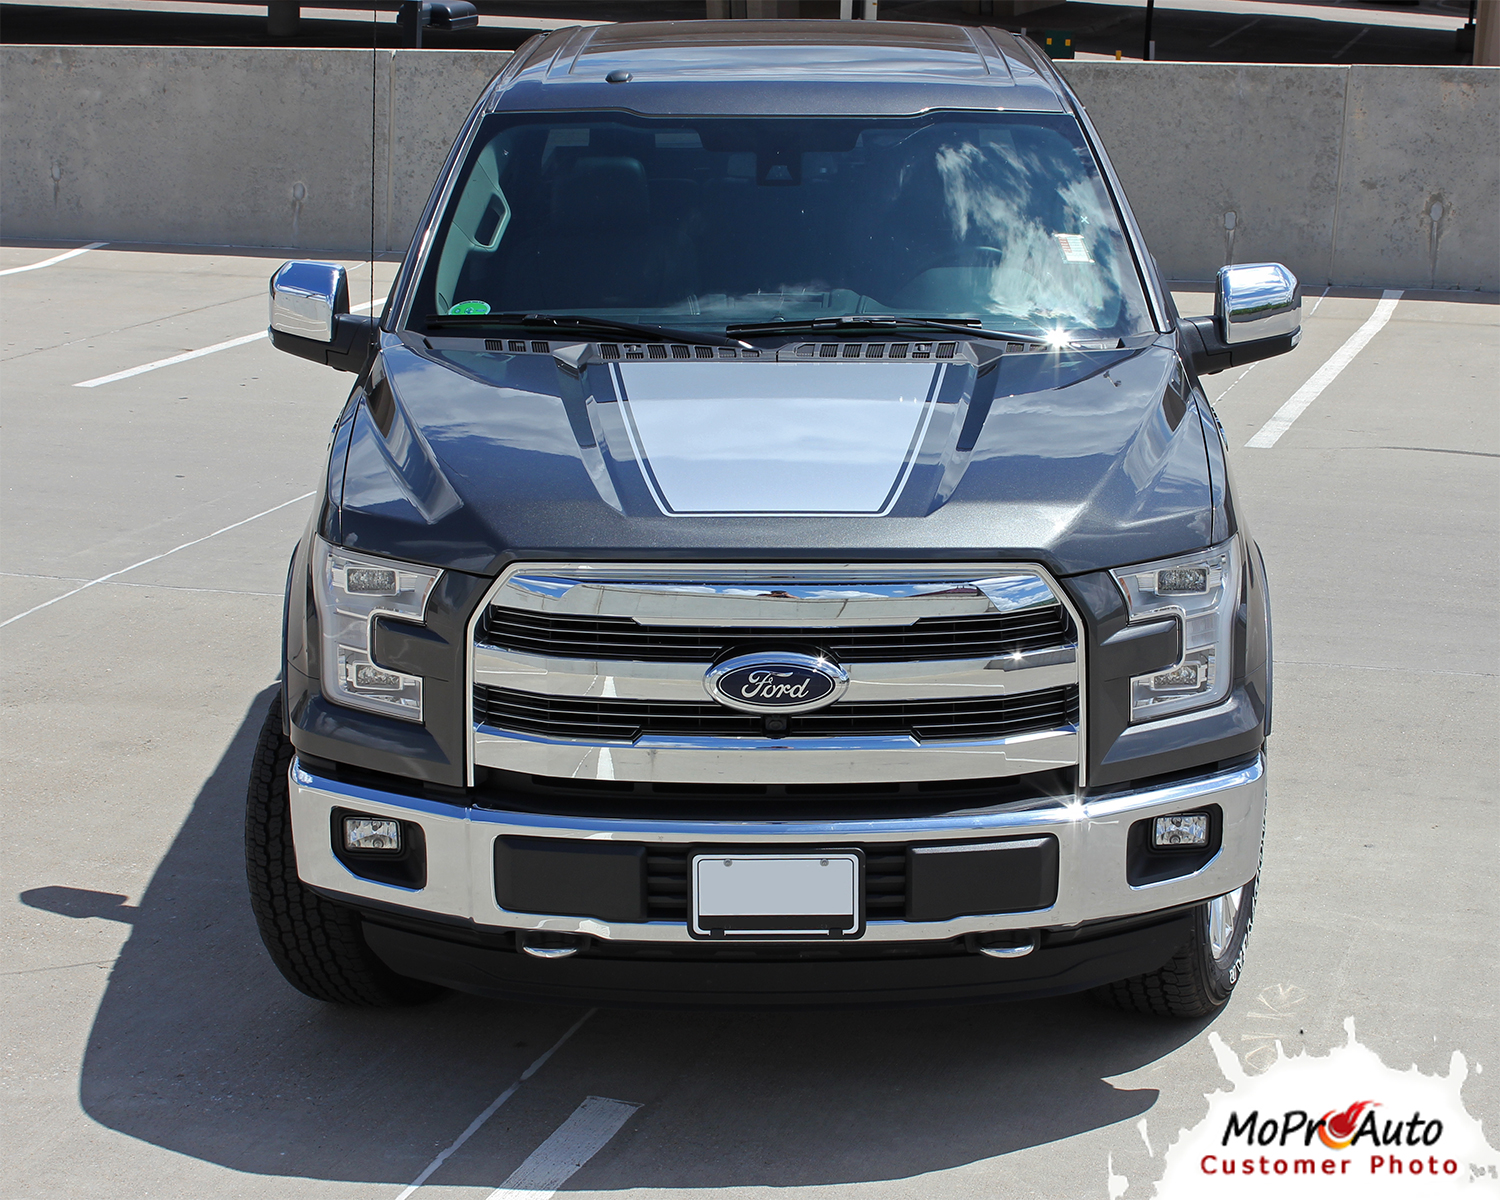 Force Hood Solid Ford F-Series F-150 Appearance Package Vinyl Graphics and Decals Kit by MoProAuto Pro Design Series